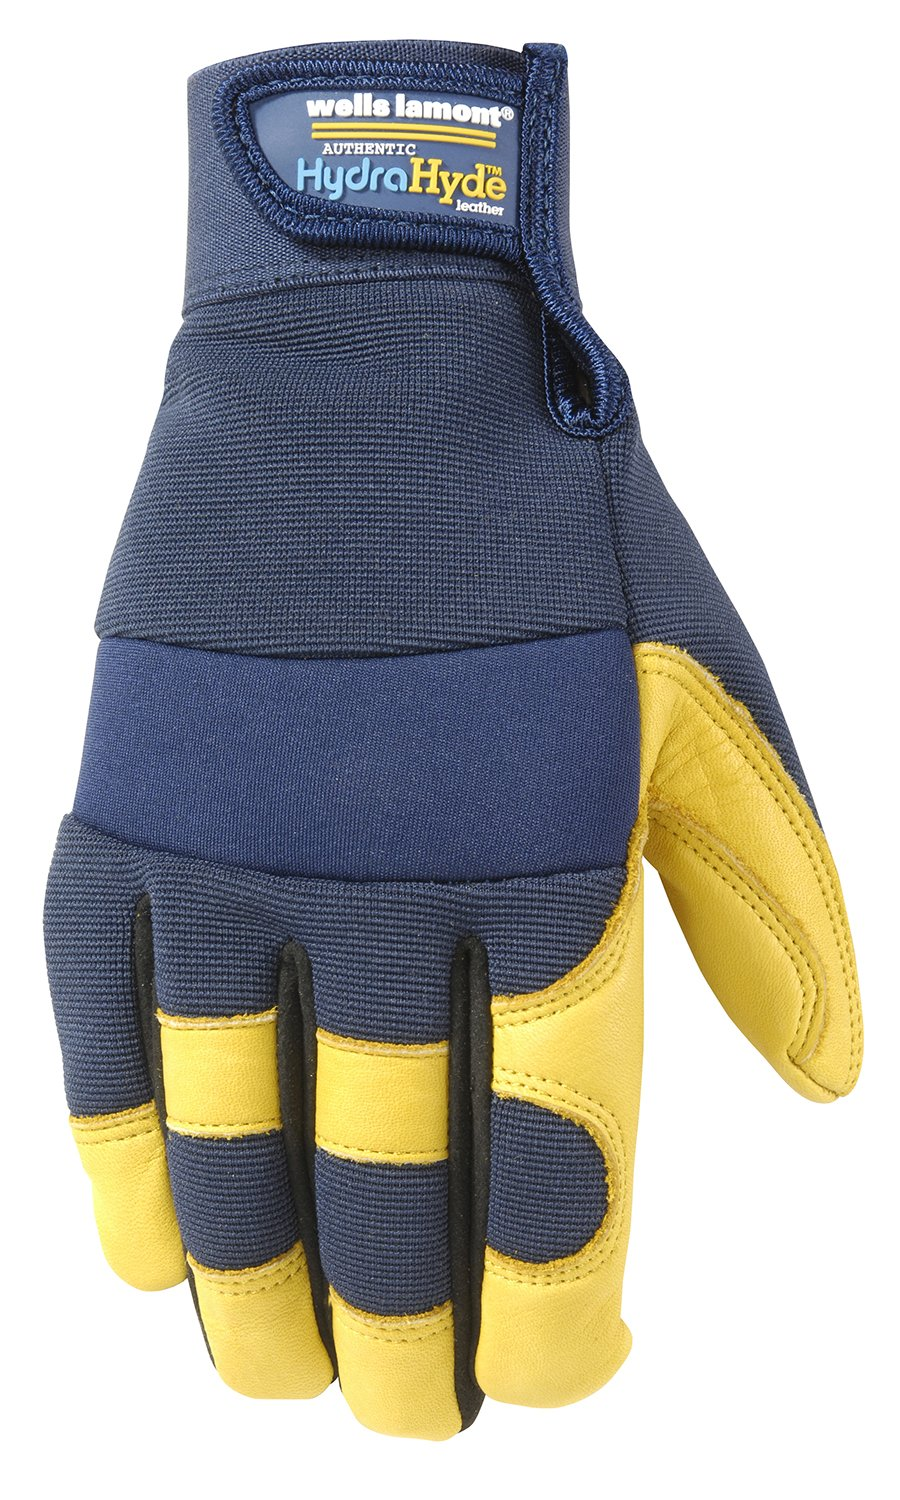 Men's Genuine Leather Palm Work Gloves, Water-Resistant HydraHyde, Large (Wells Lamont 3207L) by Wells Lamont